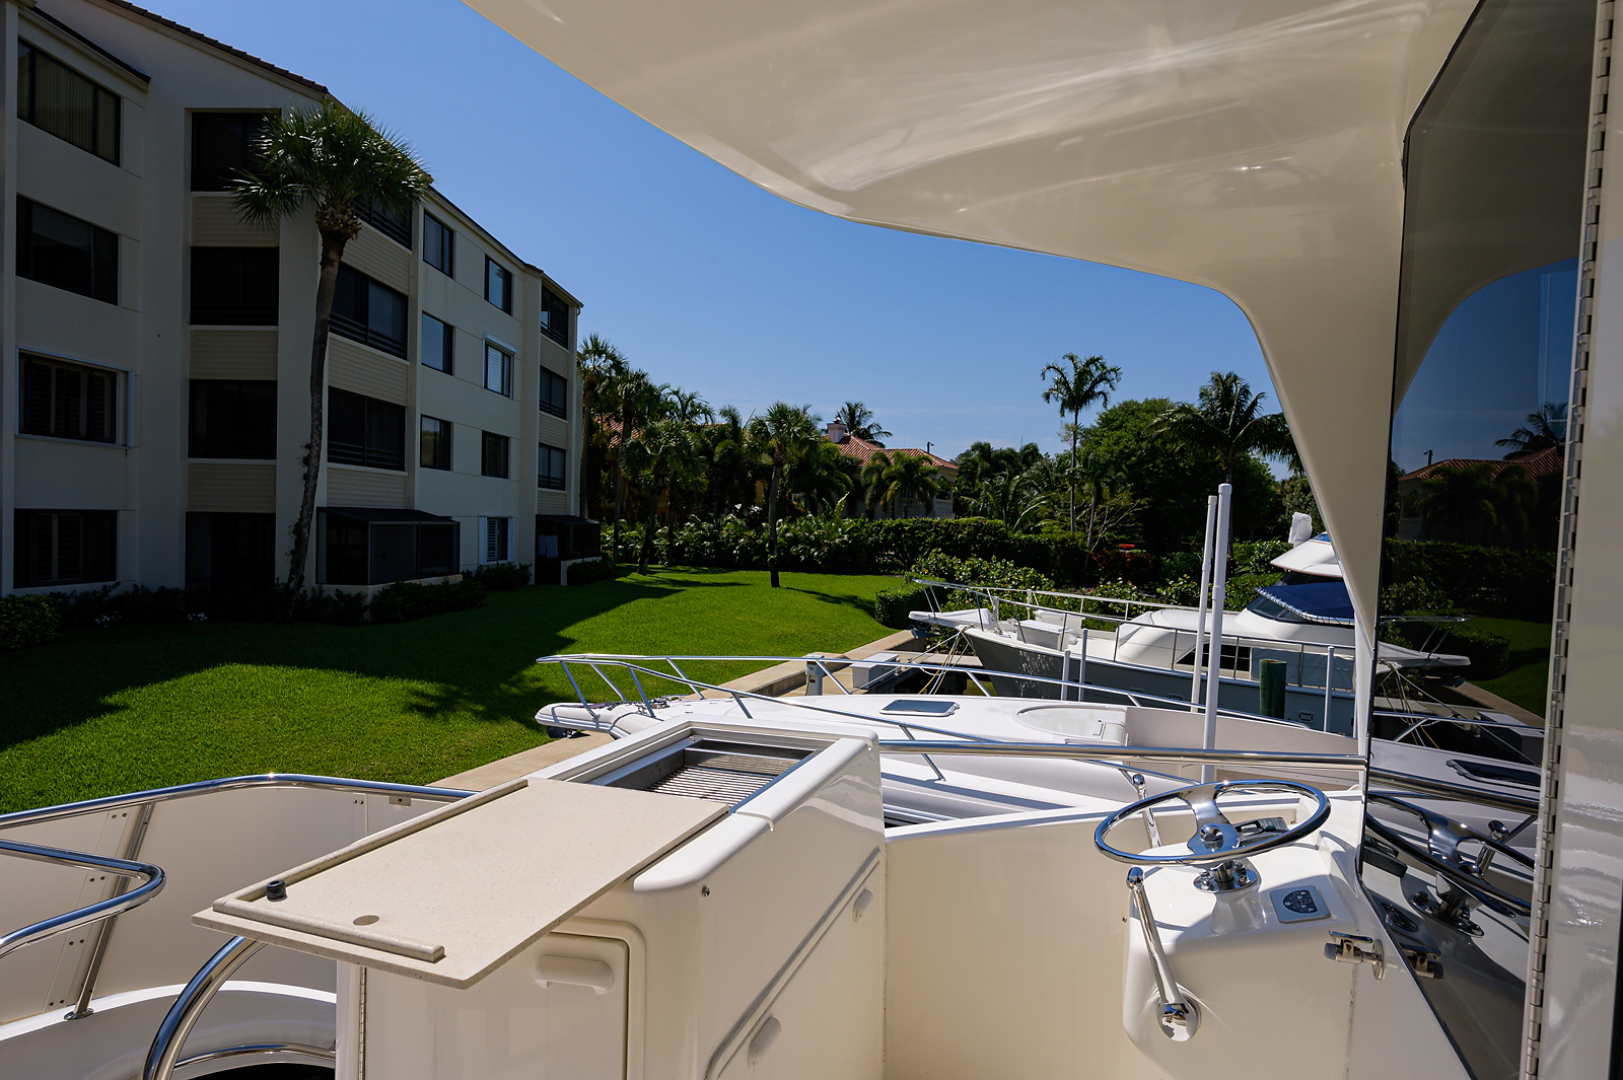 Ocean Yachts-Odyssey 2005-MISS JAN Palm Beach Gardens-Florida-United States-Enclosed Flybridge Aft Deck-1387035 | Thumbnail